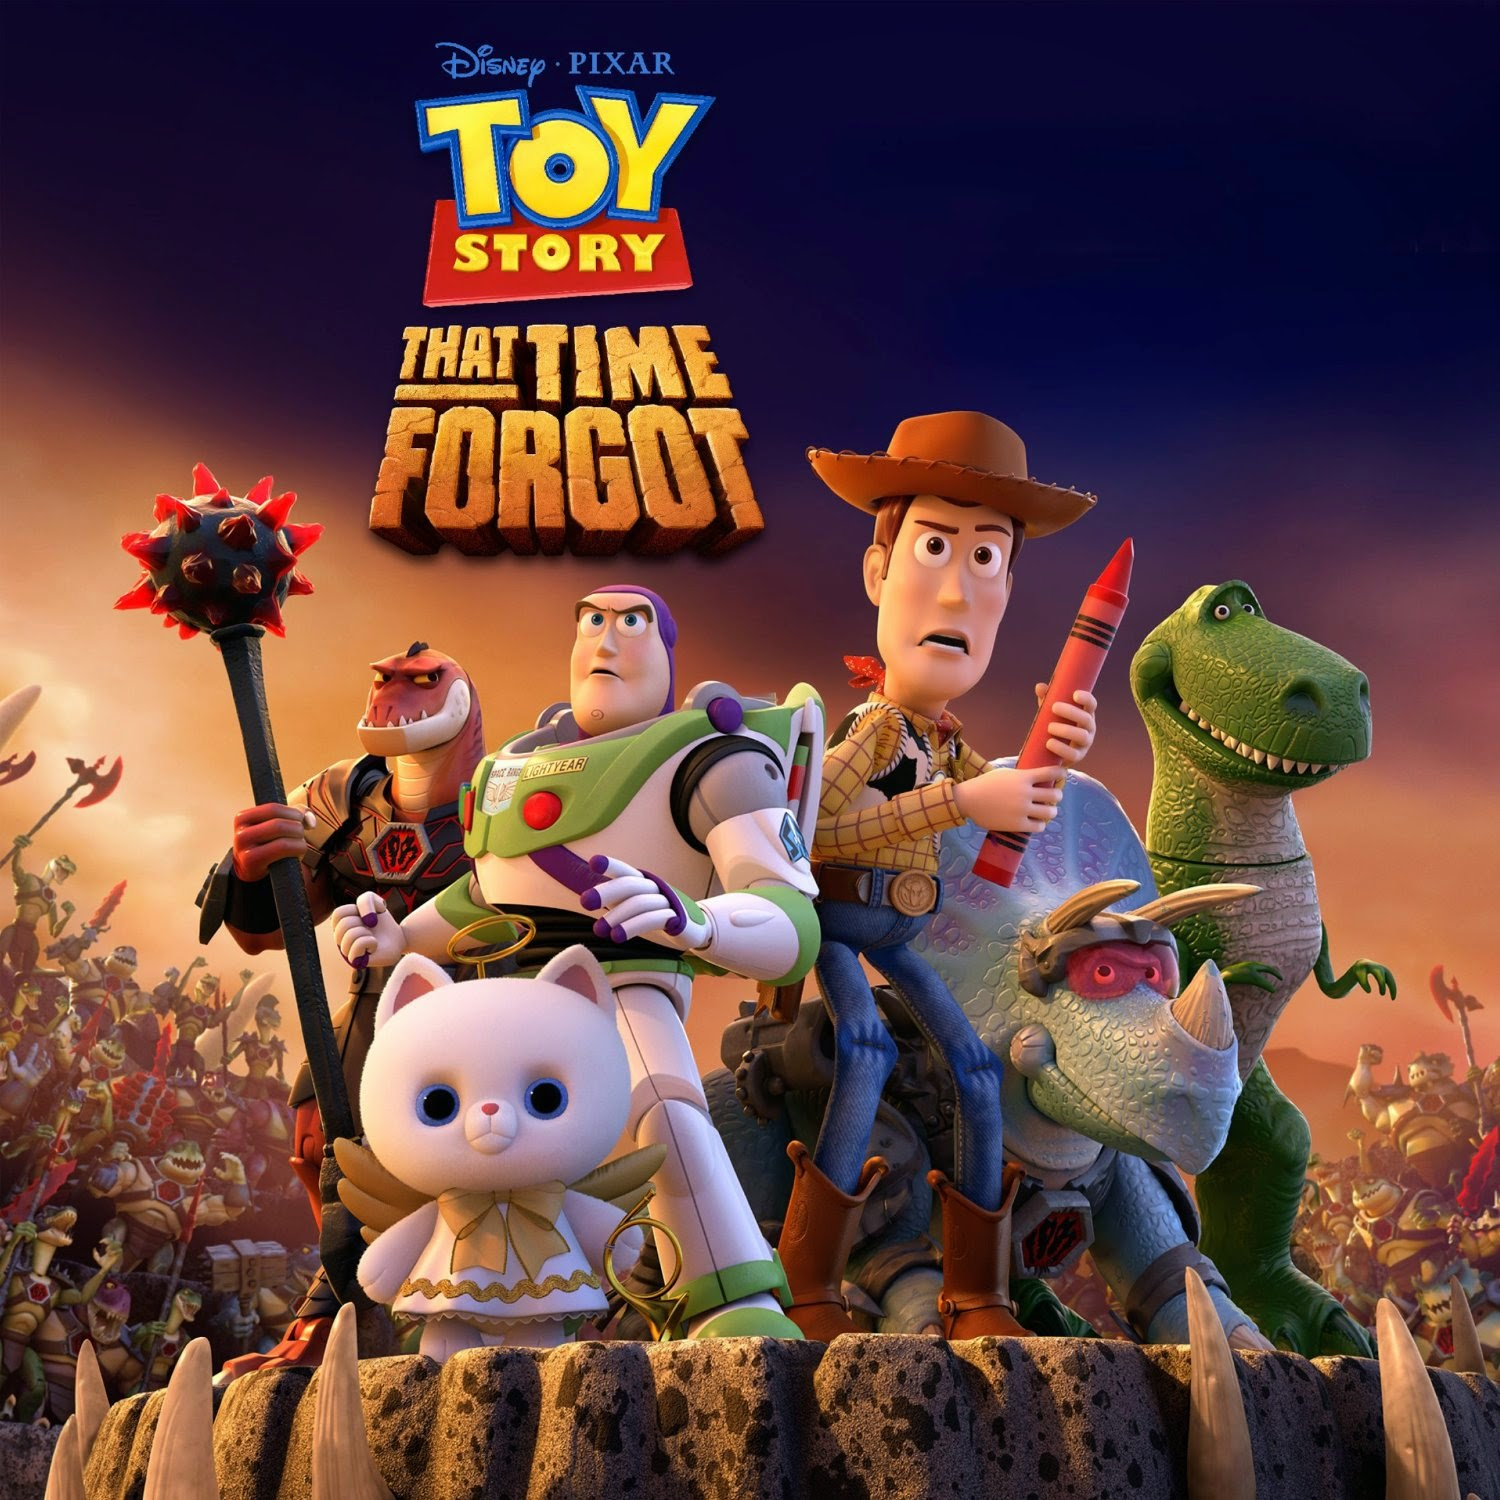 'Toy Story That Time Forgot' Digital Storybook Coming Soon ...